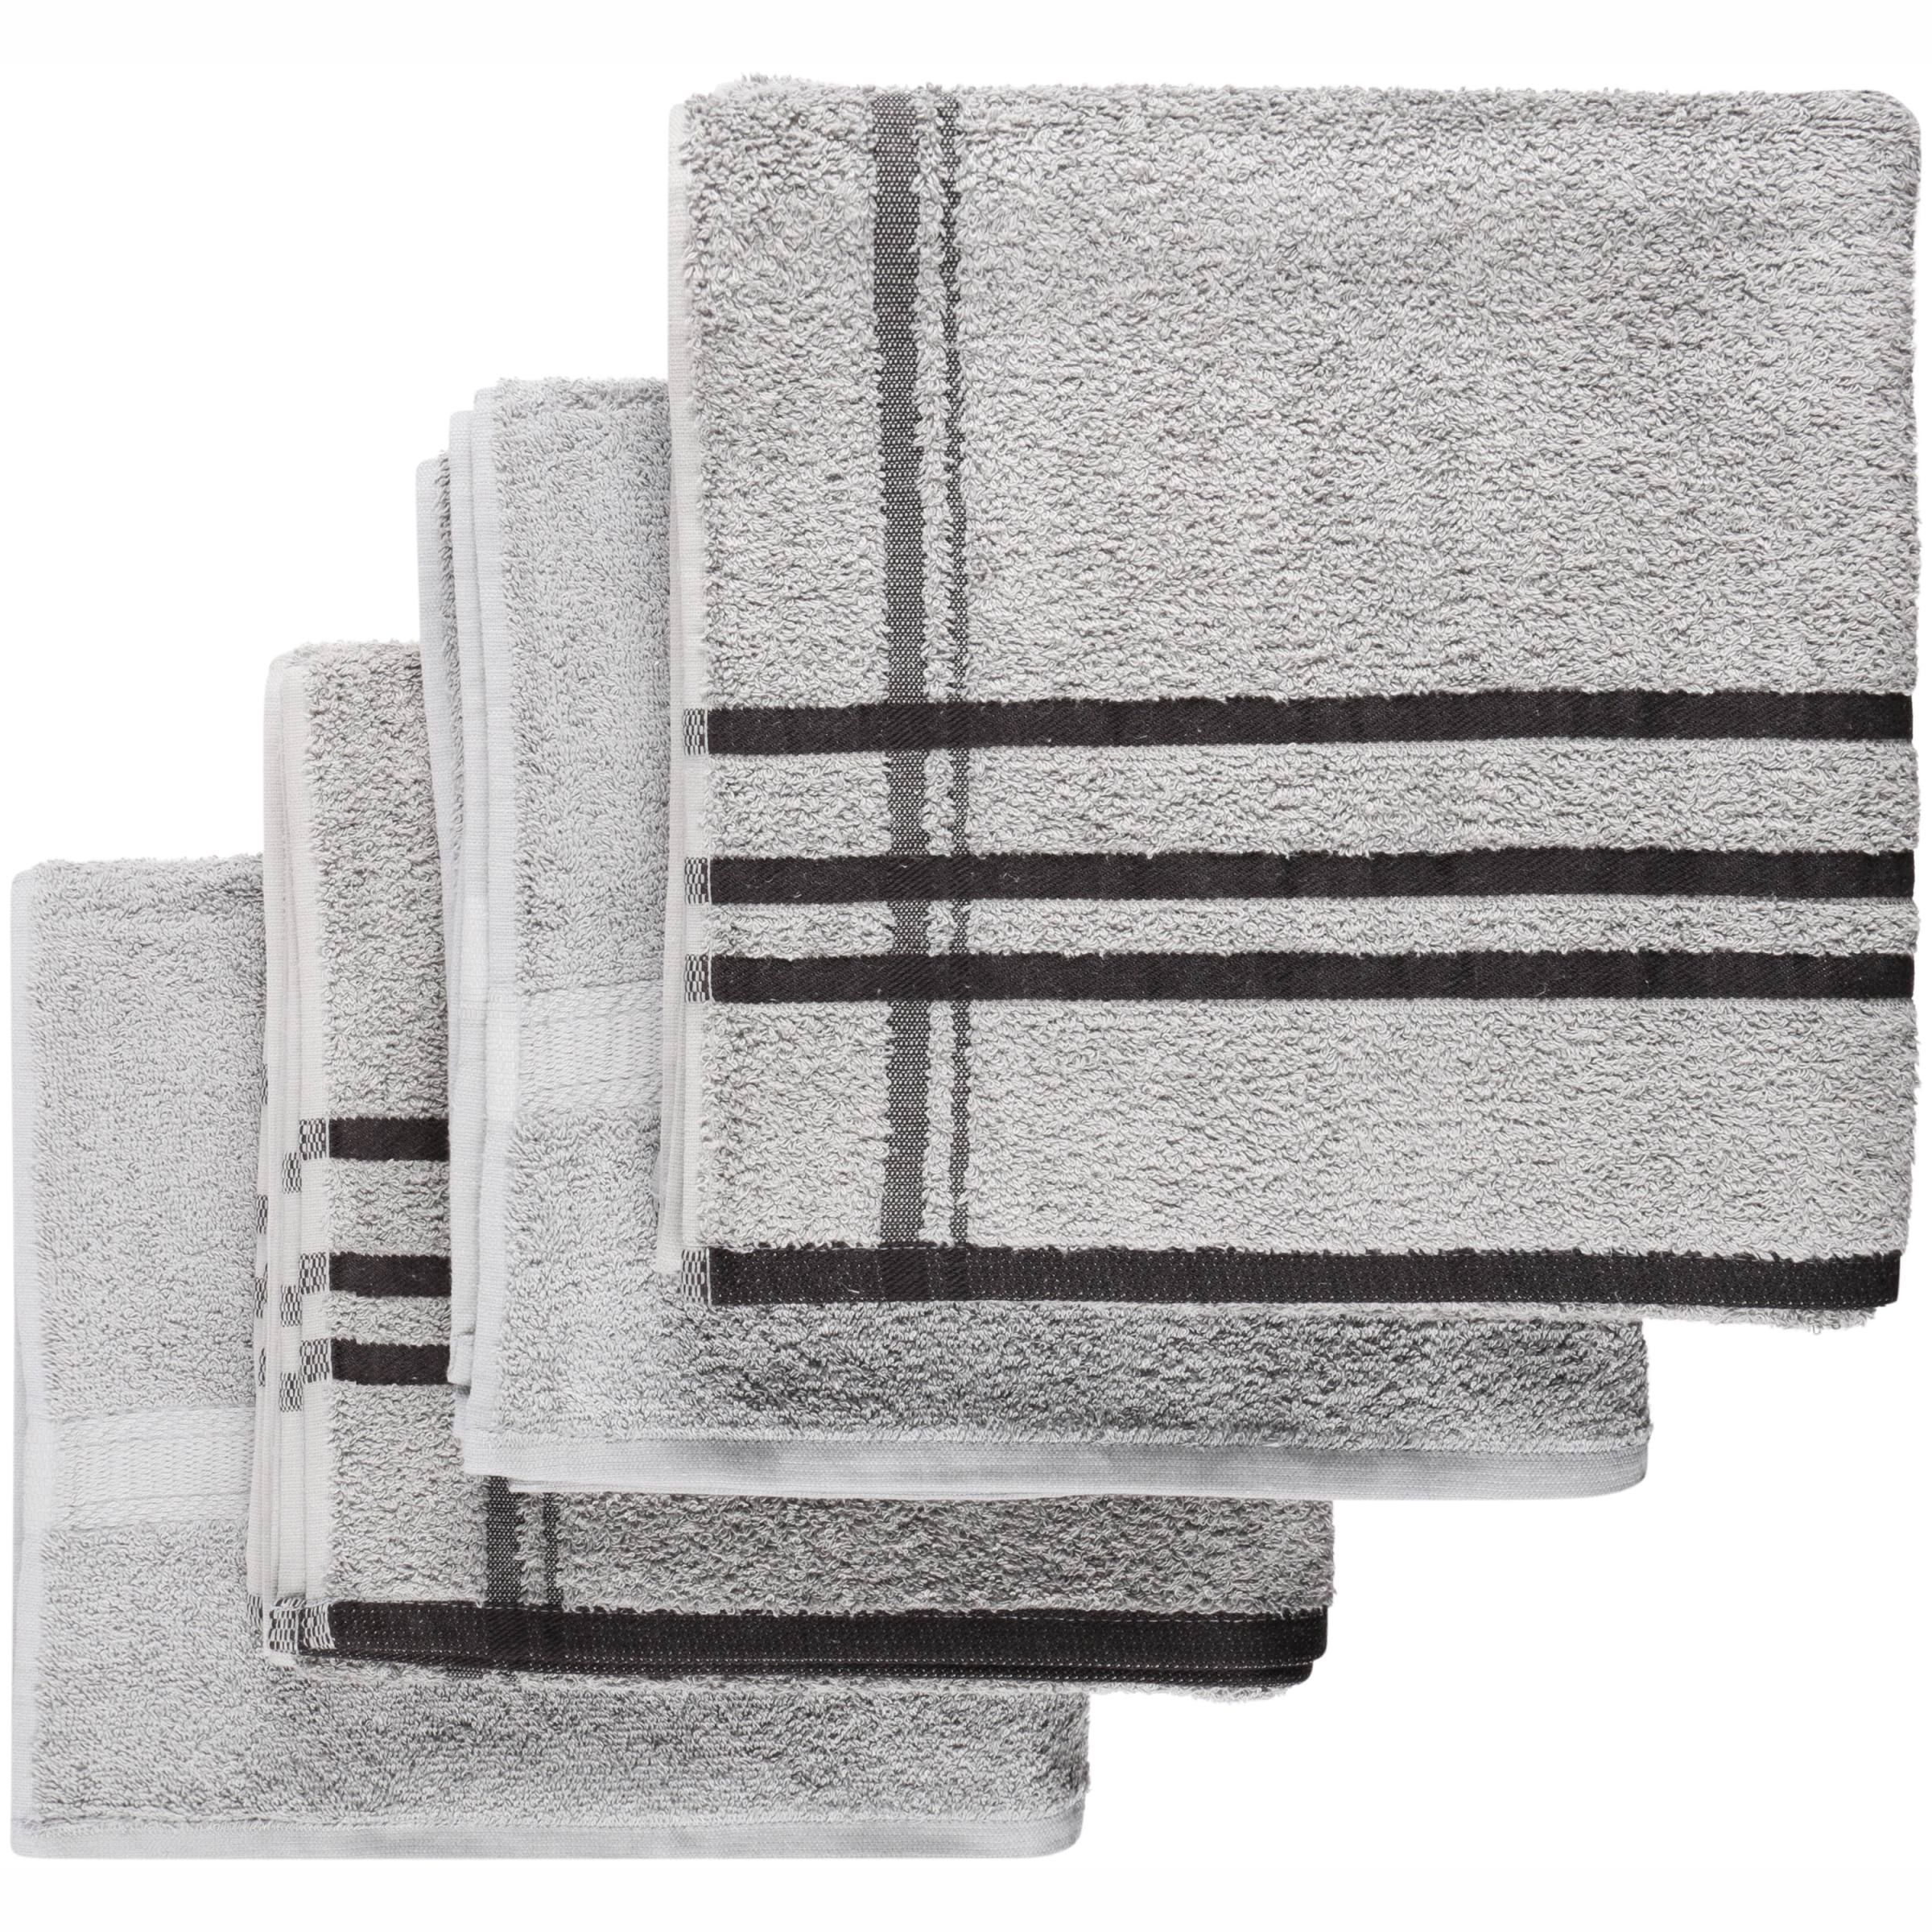 Mainstays Bath Towels 4 ct Pack by Wal-Mart Stores, Inc.